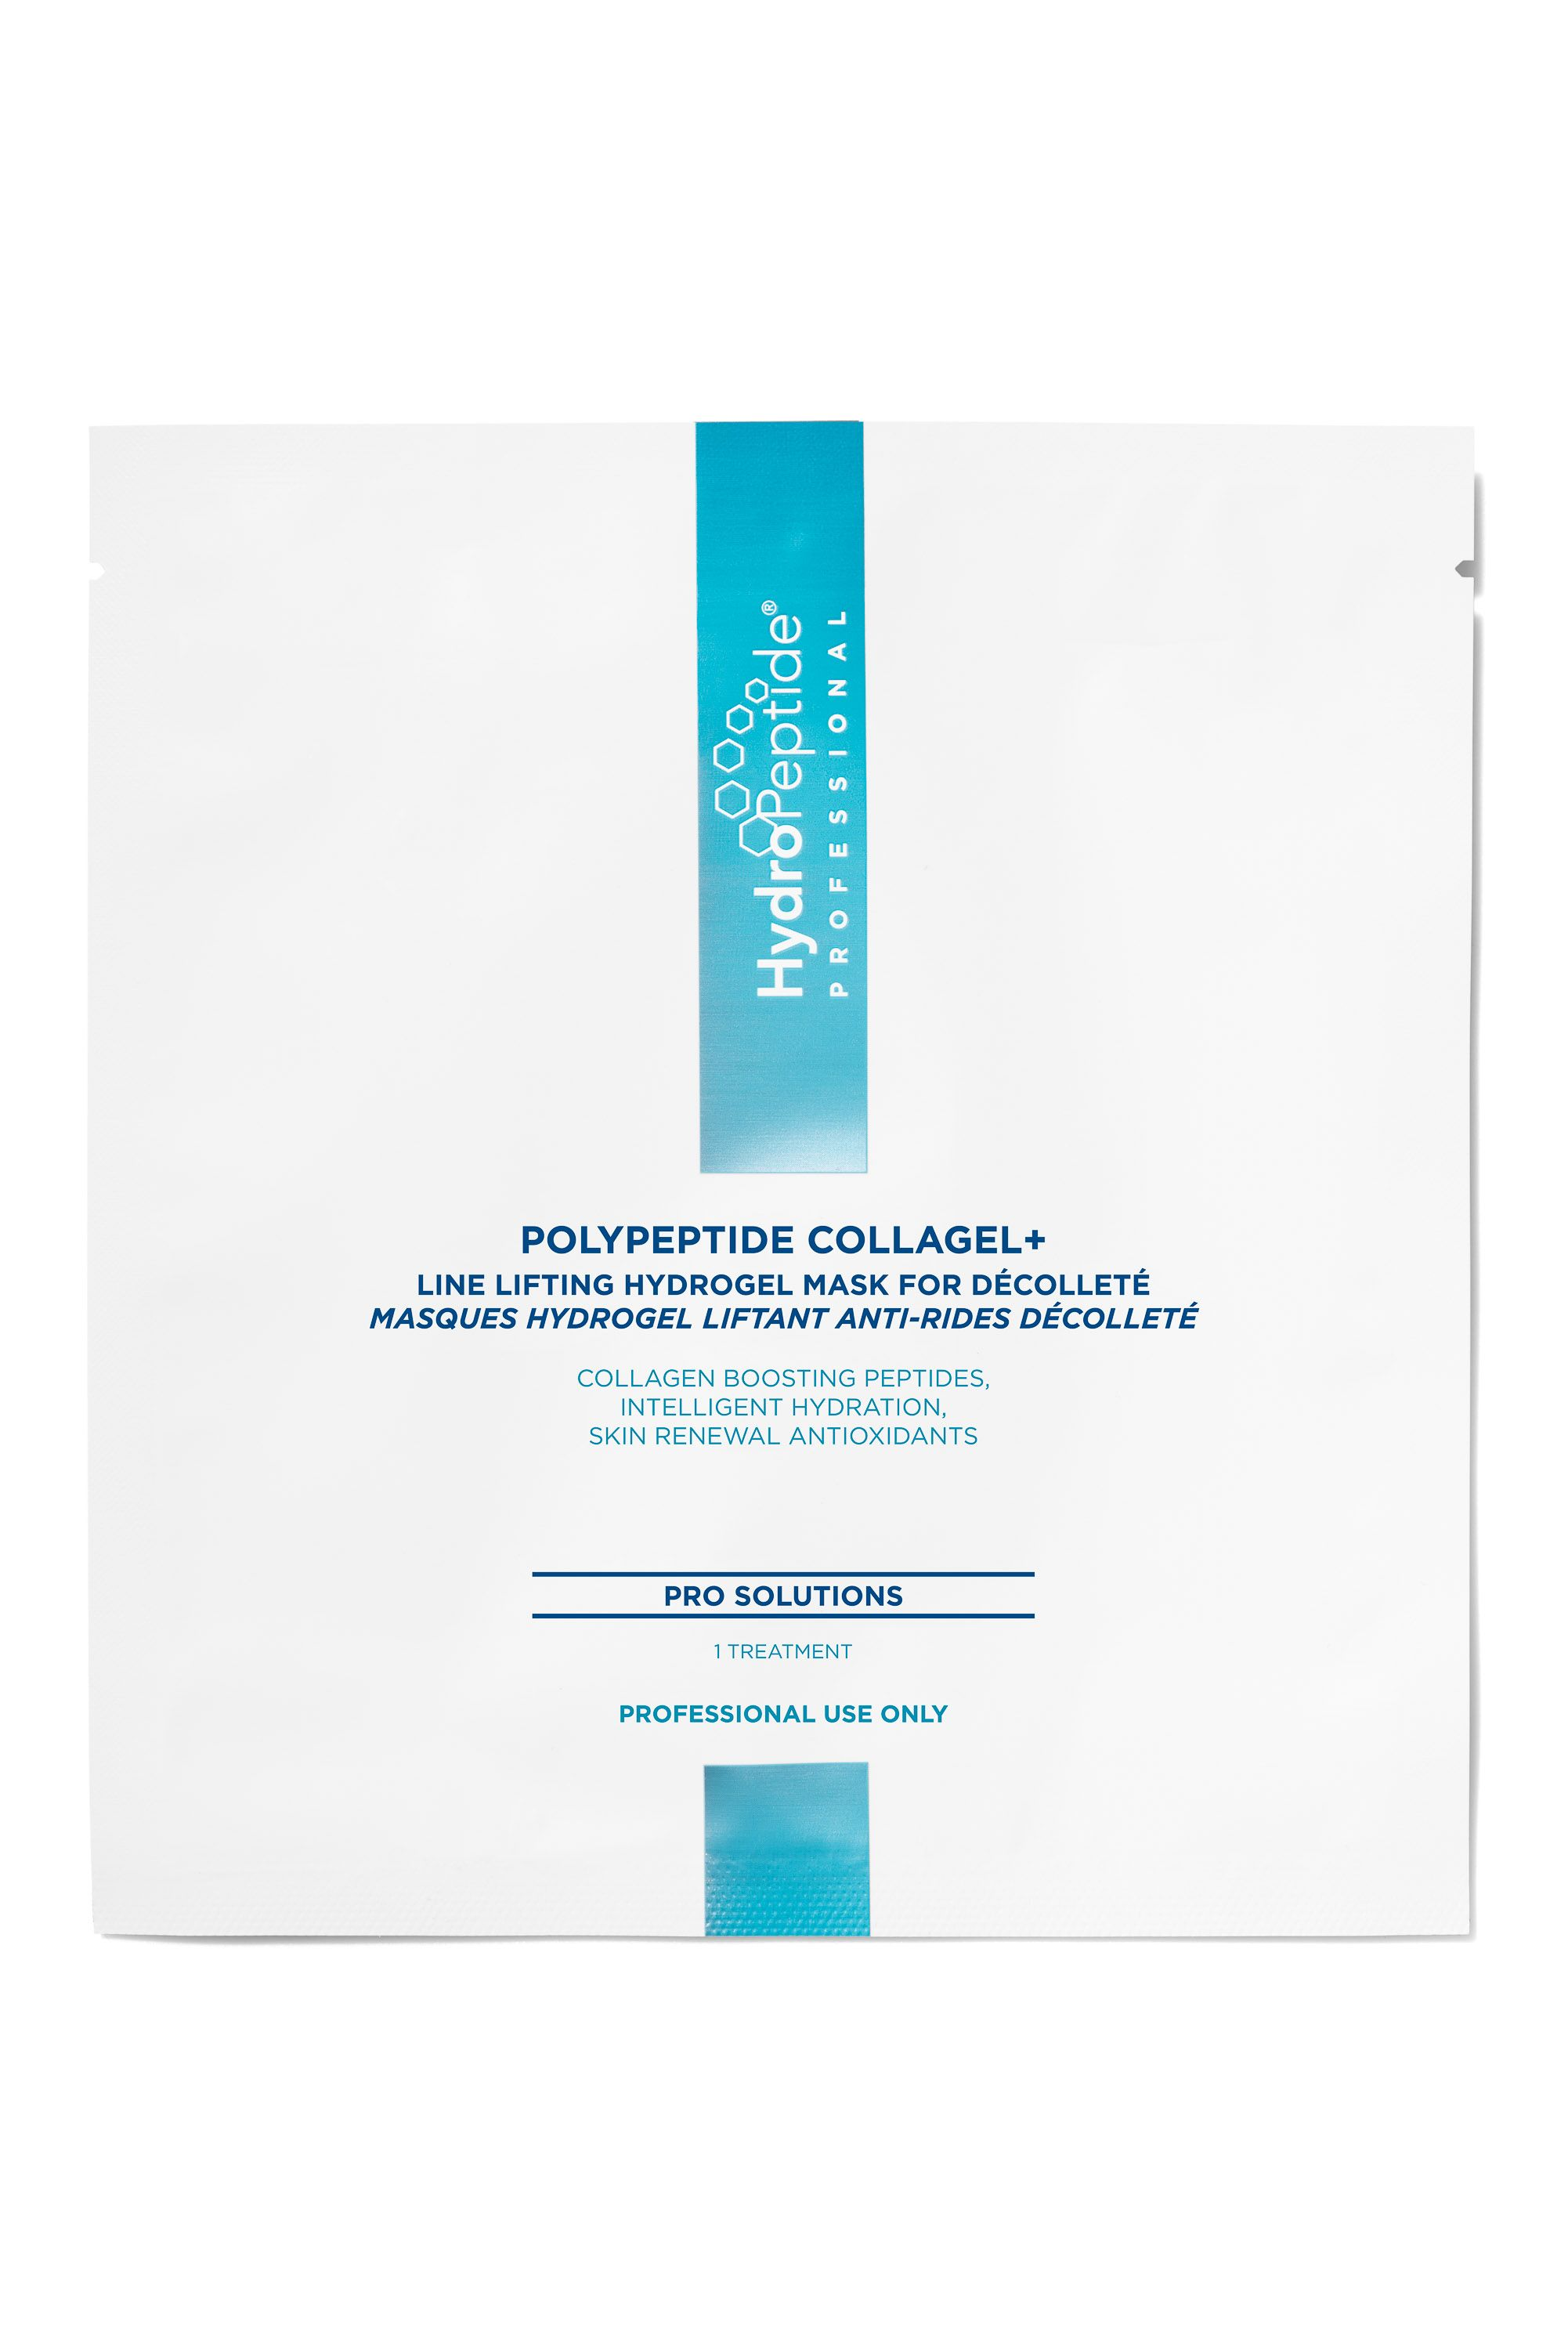 Professional PolyPeptide Collagel + (DECOLLETE)